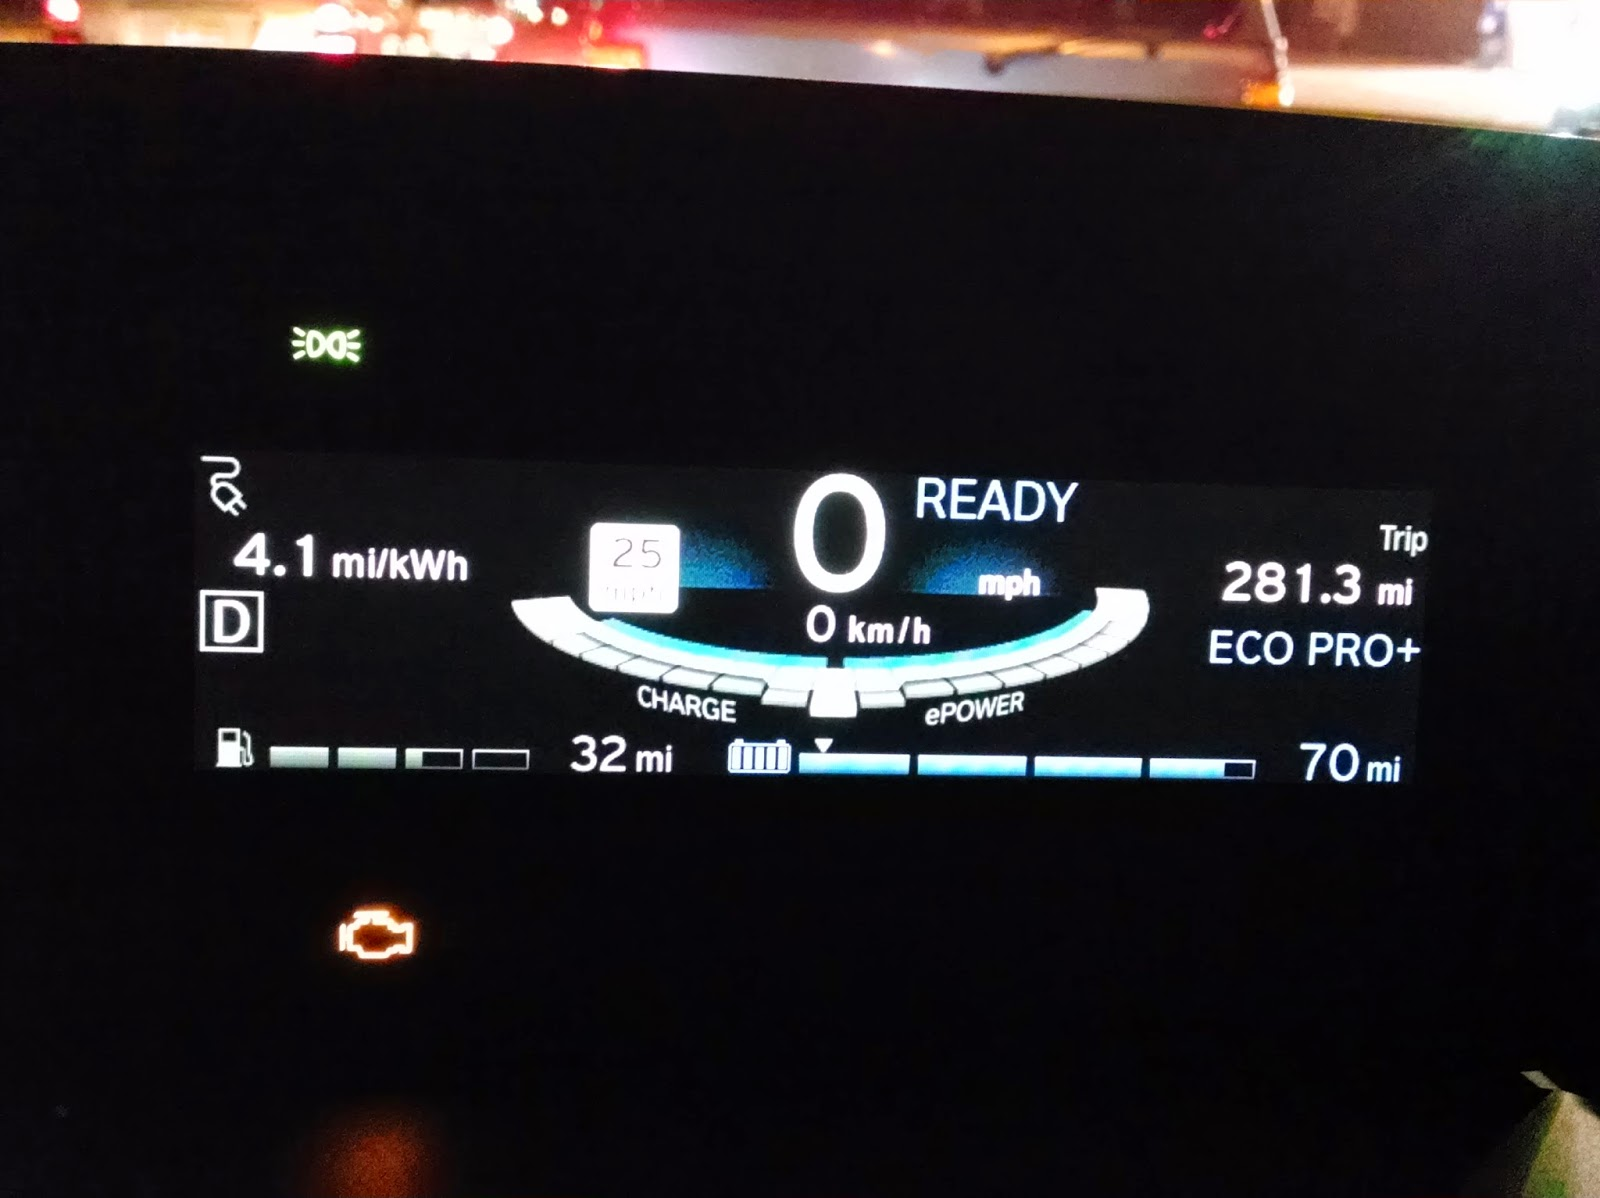 The Electric Bmw I3 Check Engine Light Mystery Plagues Range